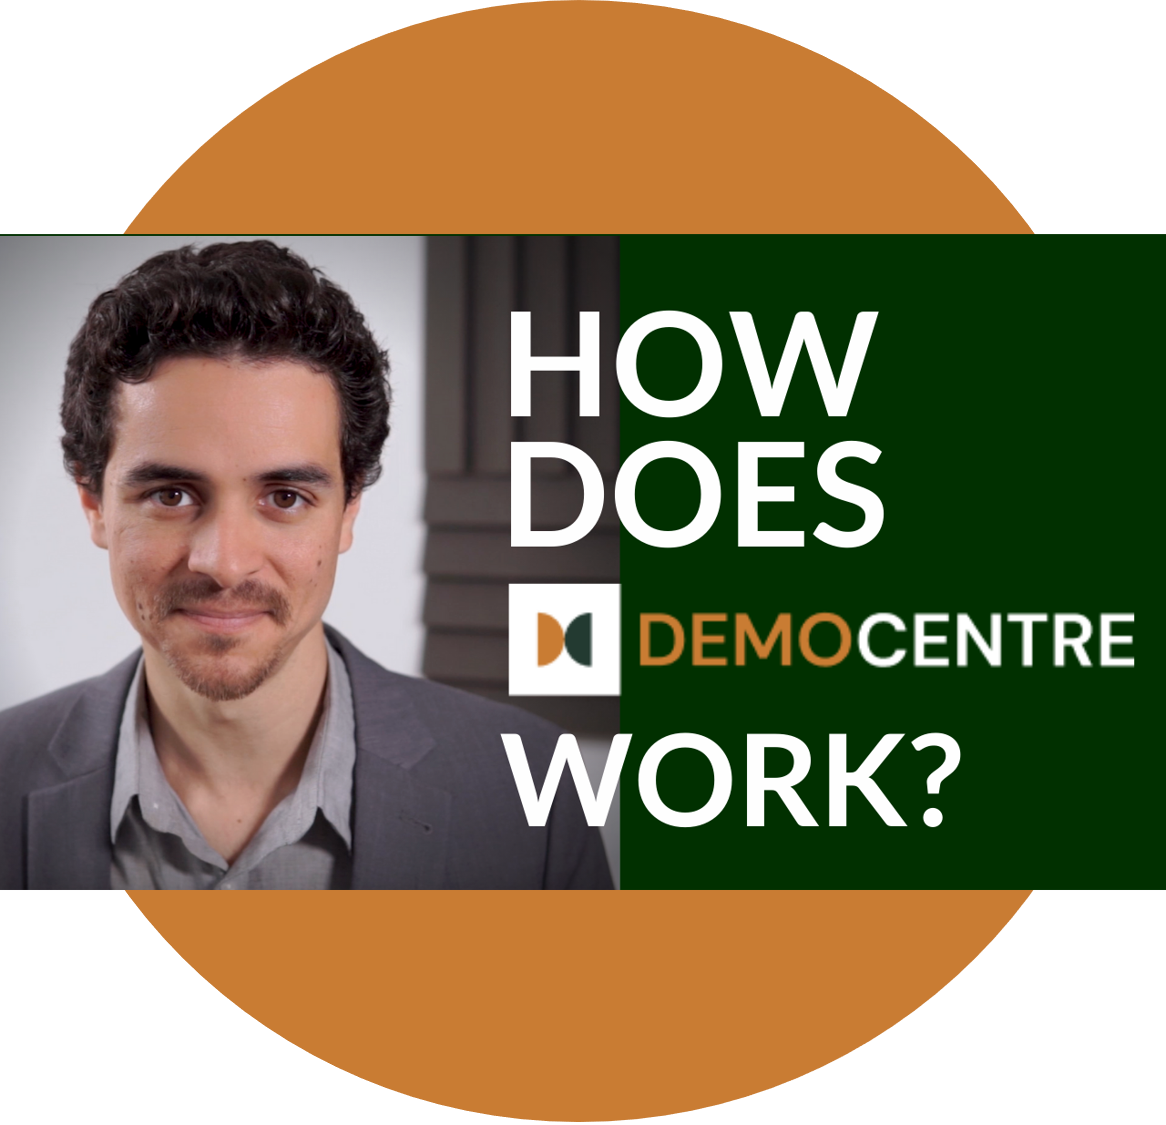 How does democentre work